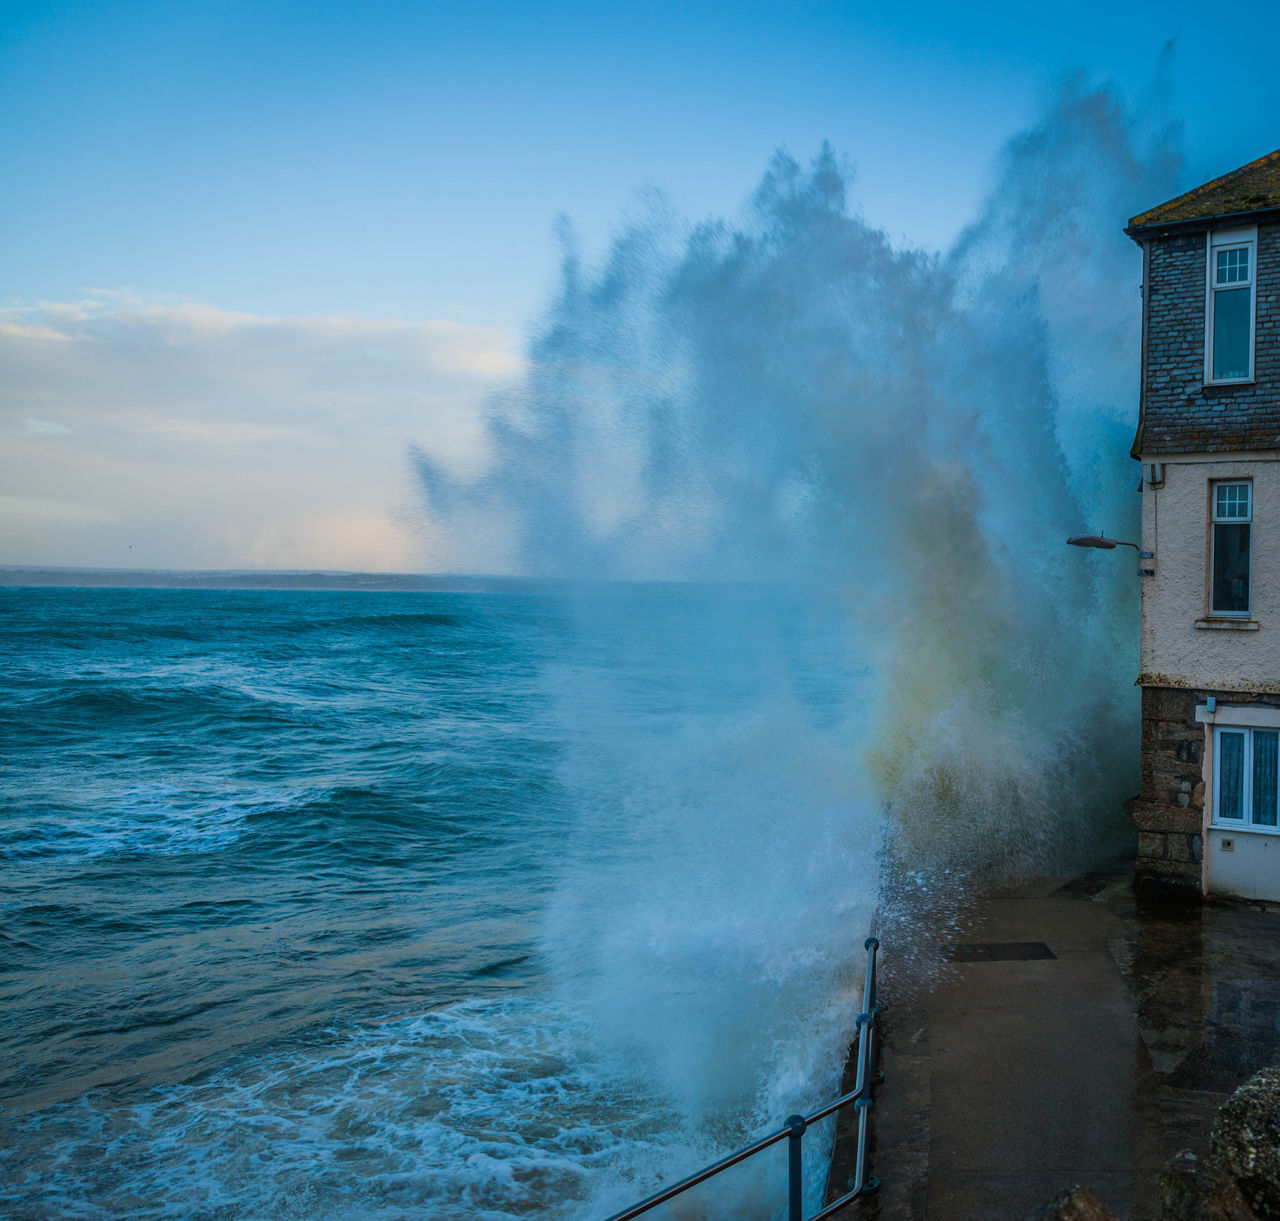 sea, water, motion, power in nature, no people, day, outdoors, force, built structure, architecture, nature, sky, beauty in nature, building exterior, wave, horizon over water, crash